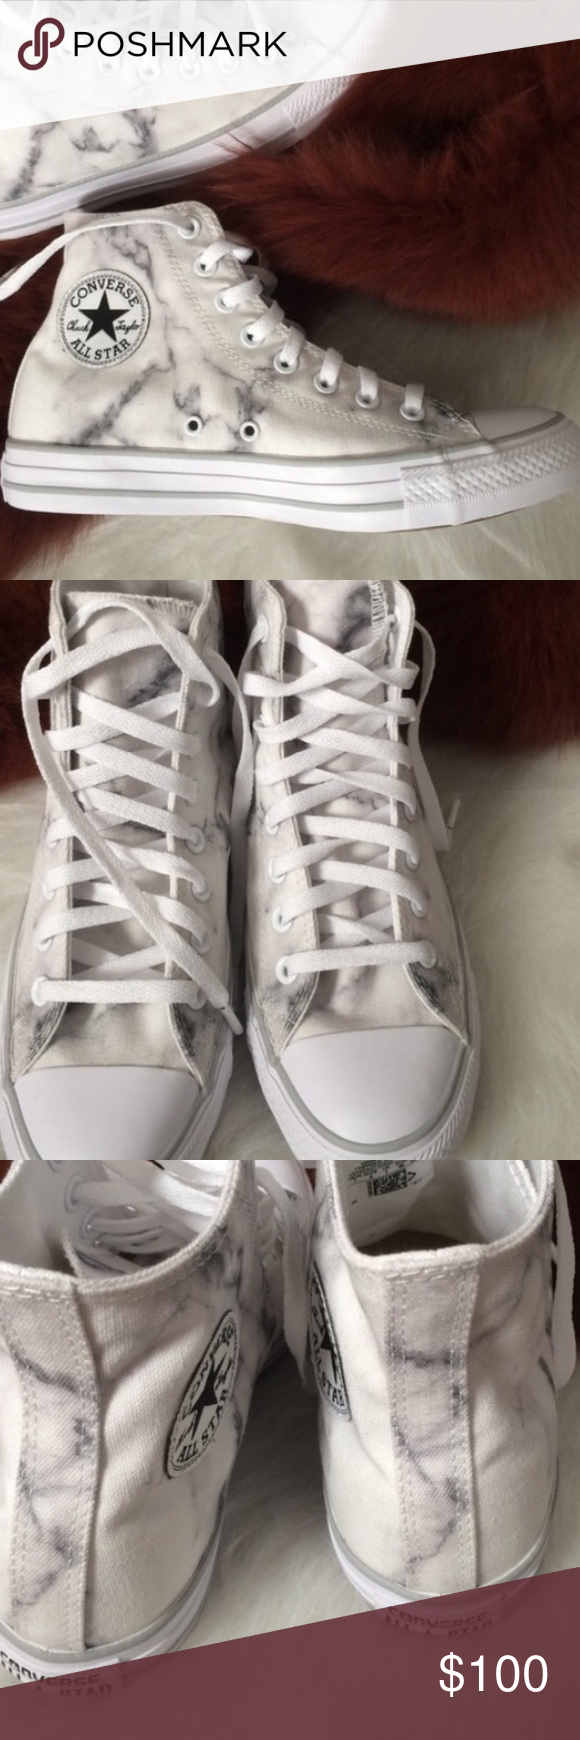 Custom Converse Marble Collection Shoes. | Converse